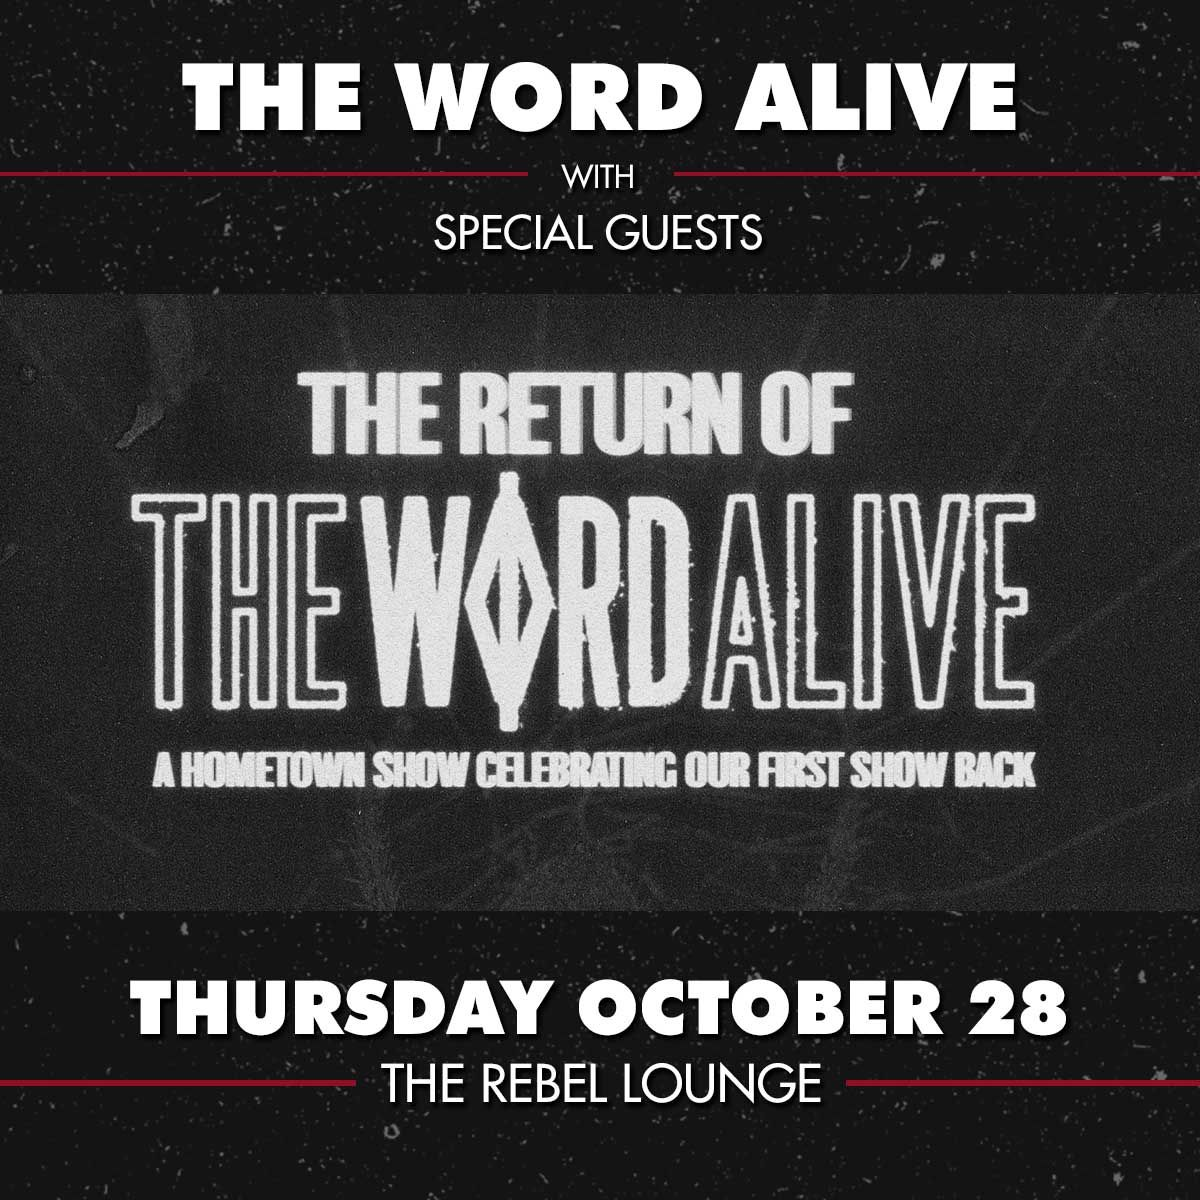 THE WORD ALIVE: